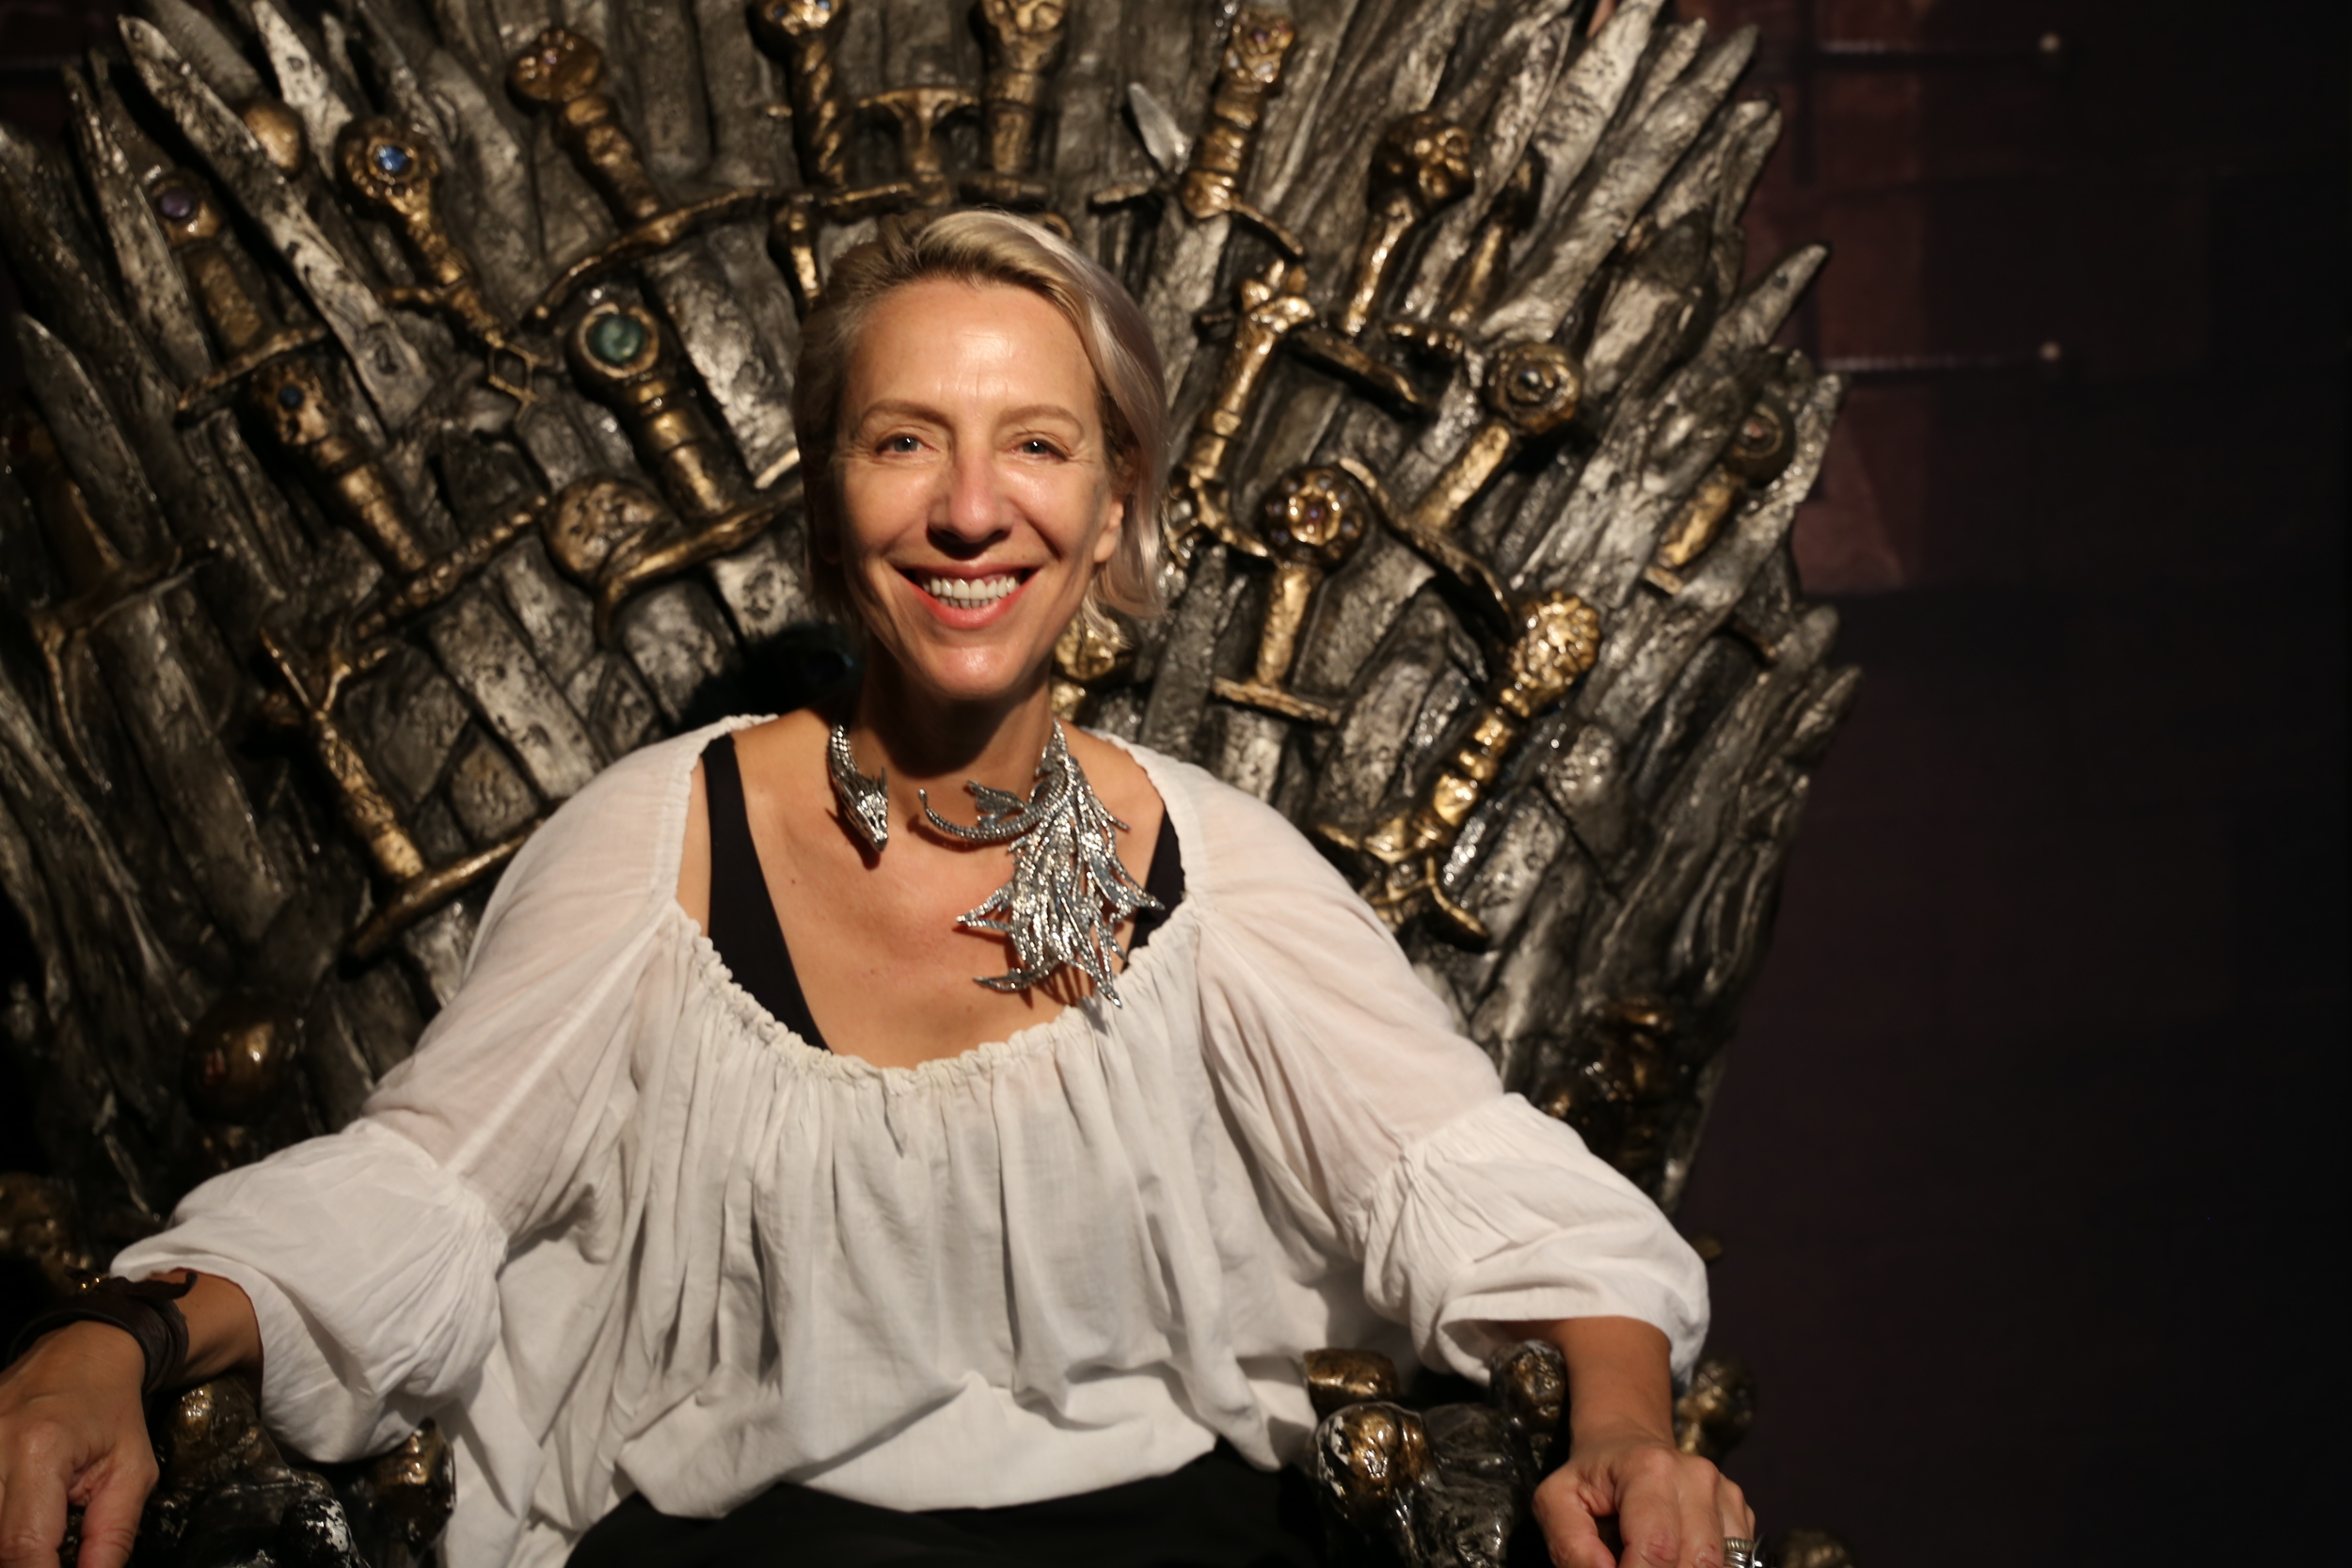 Costume designer Michele Clapton sits on the Iron Throne at SDCC.